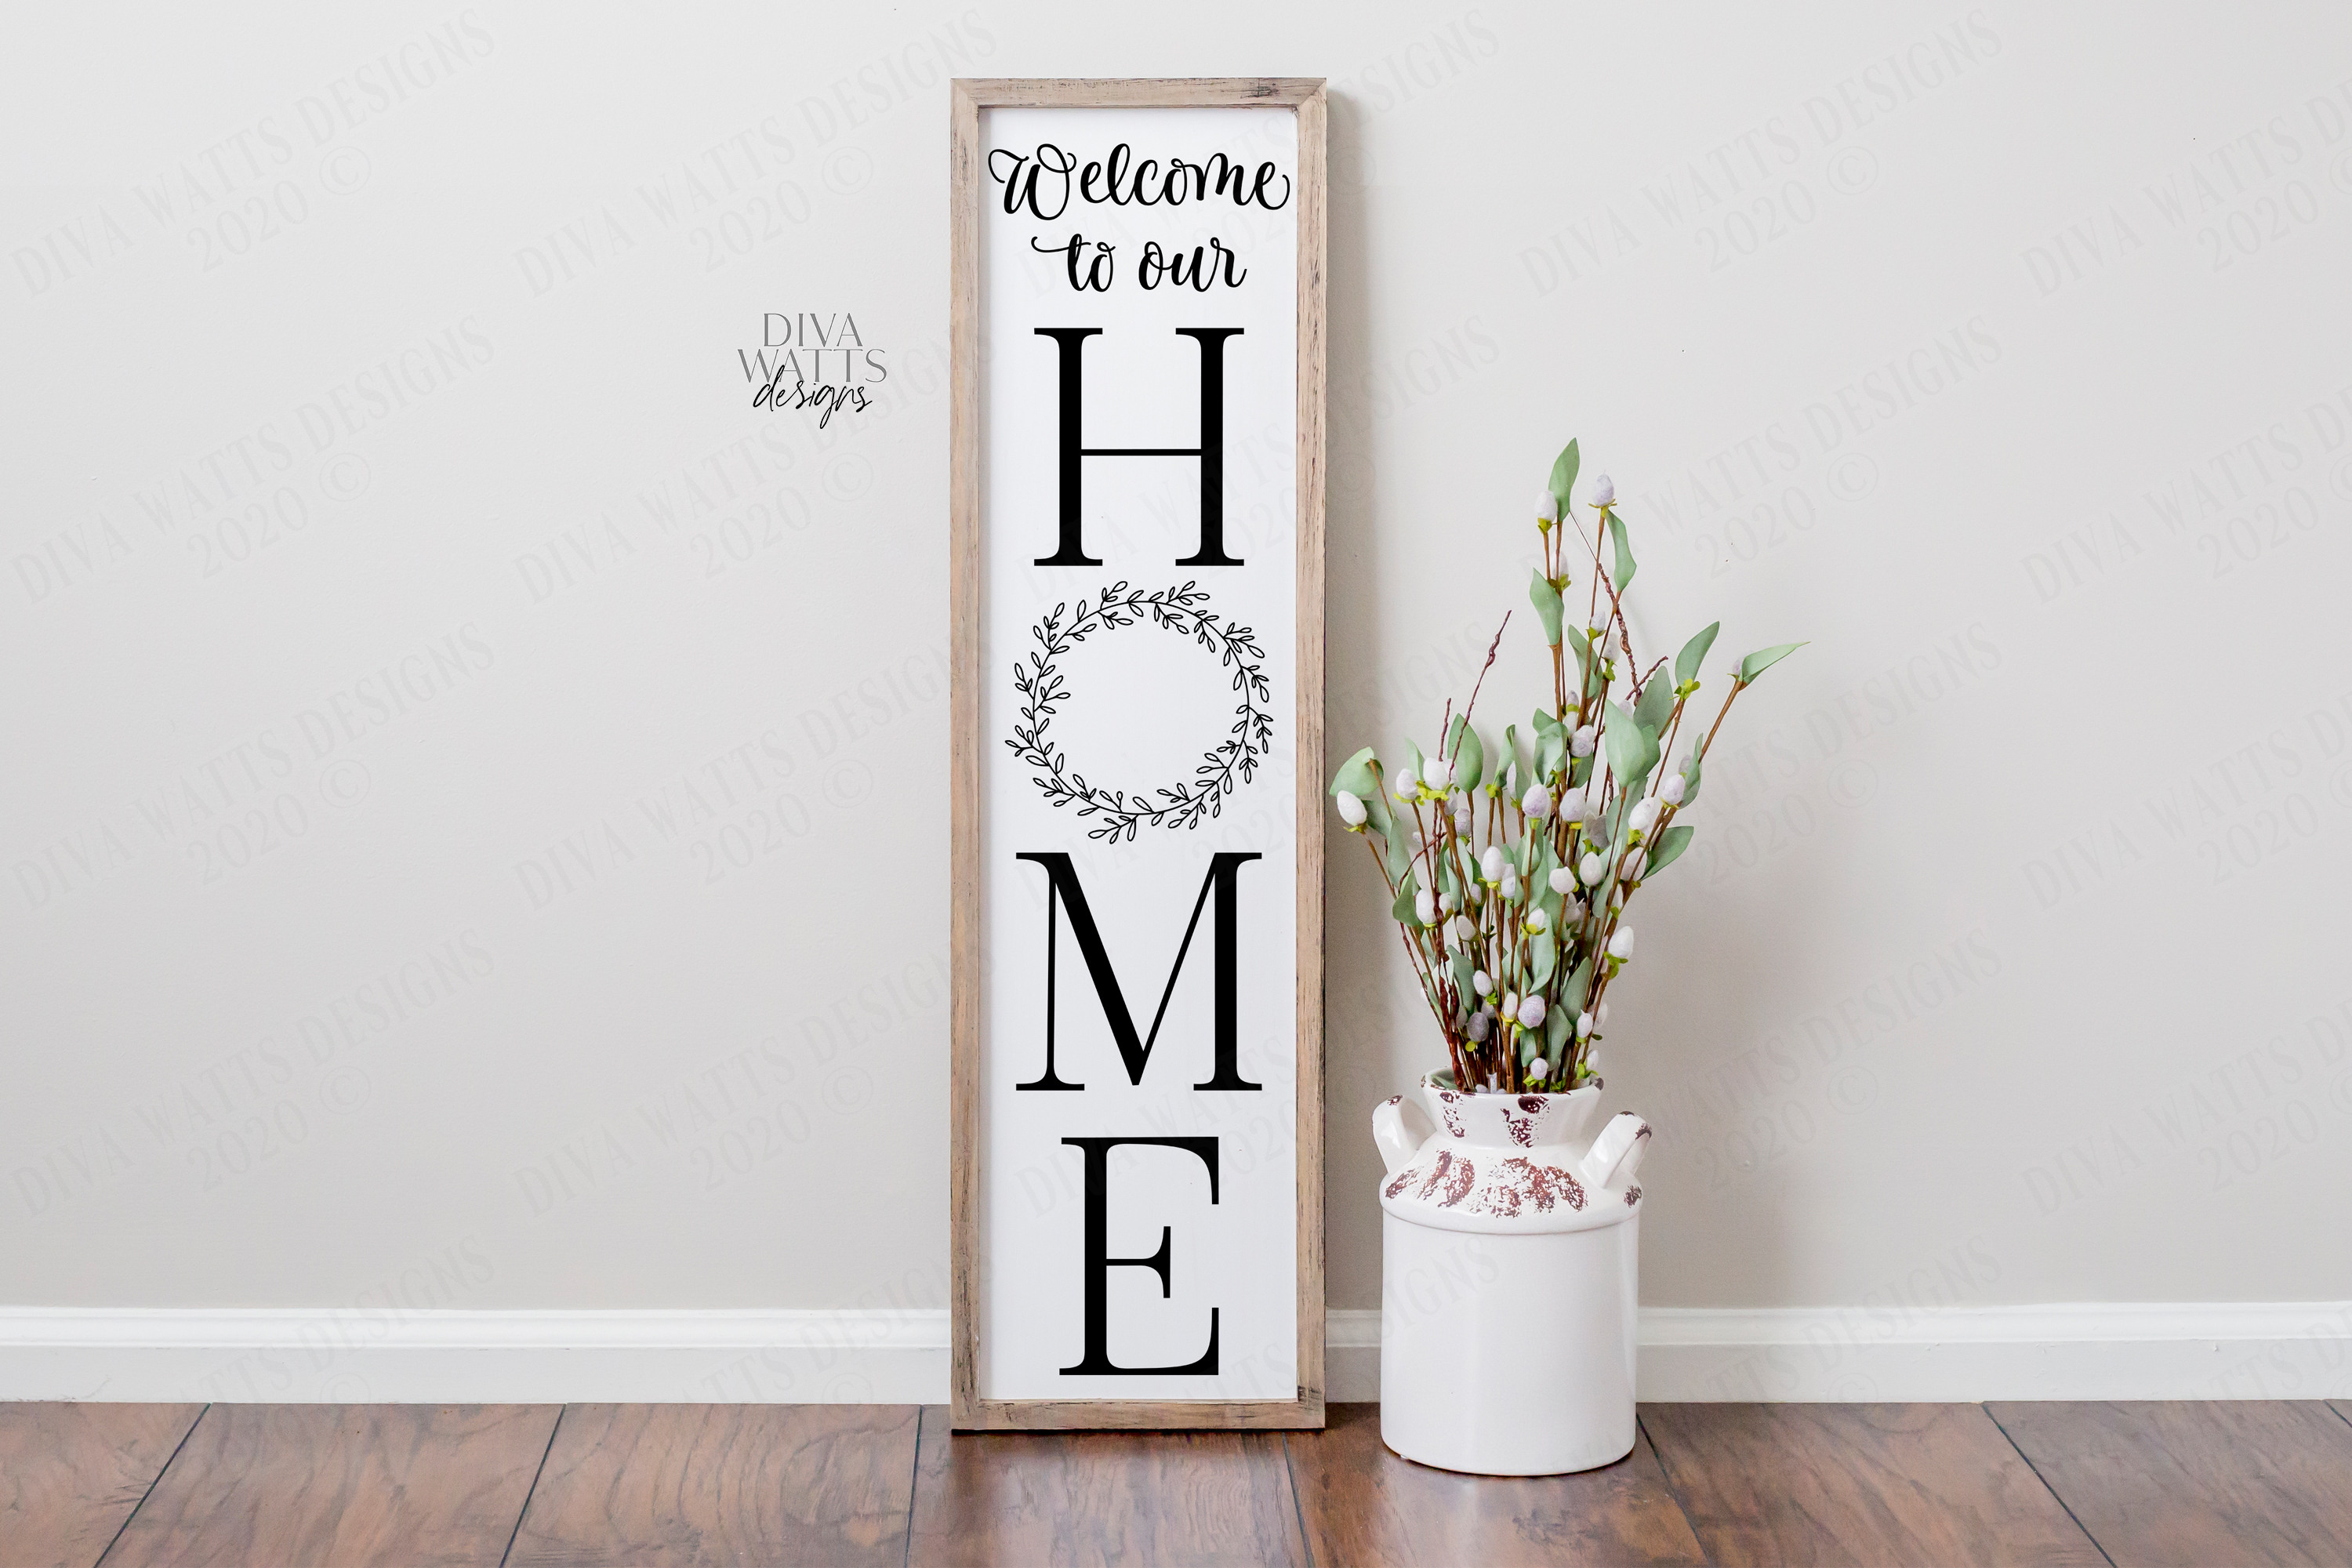 Welcome To Our Home - Vertical Farmhouse Sign - SVG EPS PNG